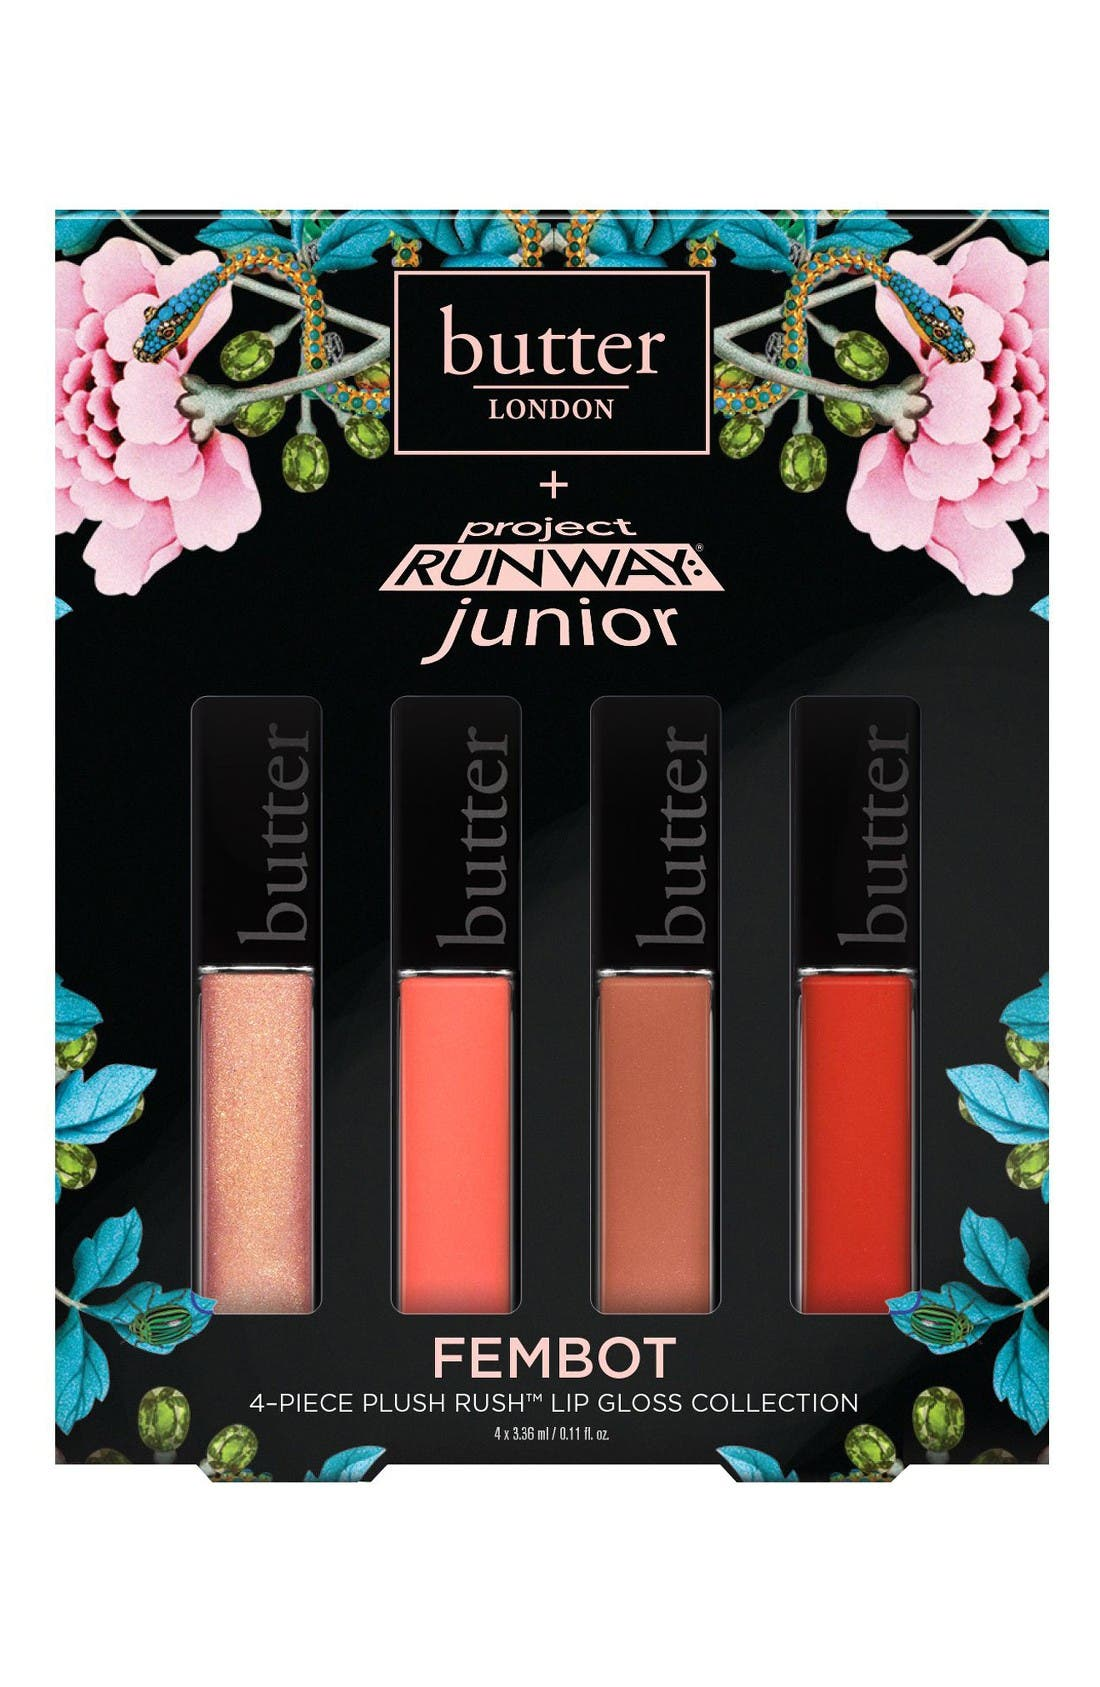 butter LONDON Project Runway® Junior Fembot Plush Rush™ Lip Gloss Set (Limited Edition) ($40 Value)